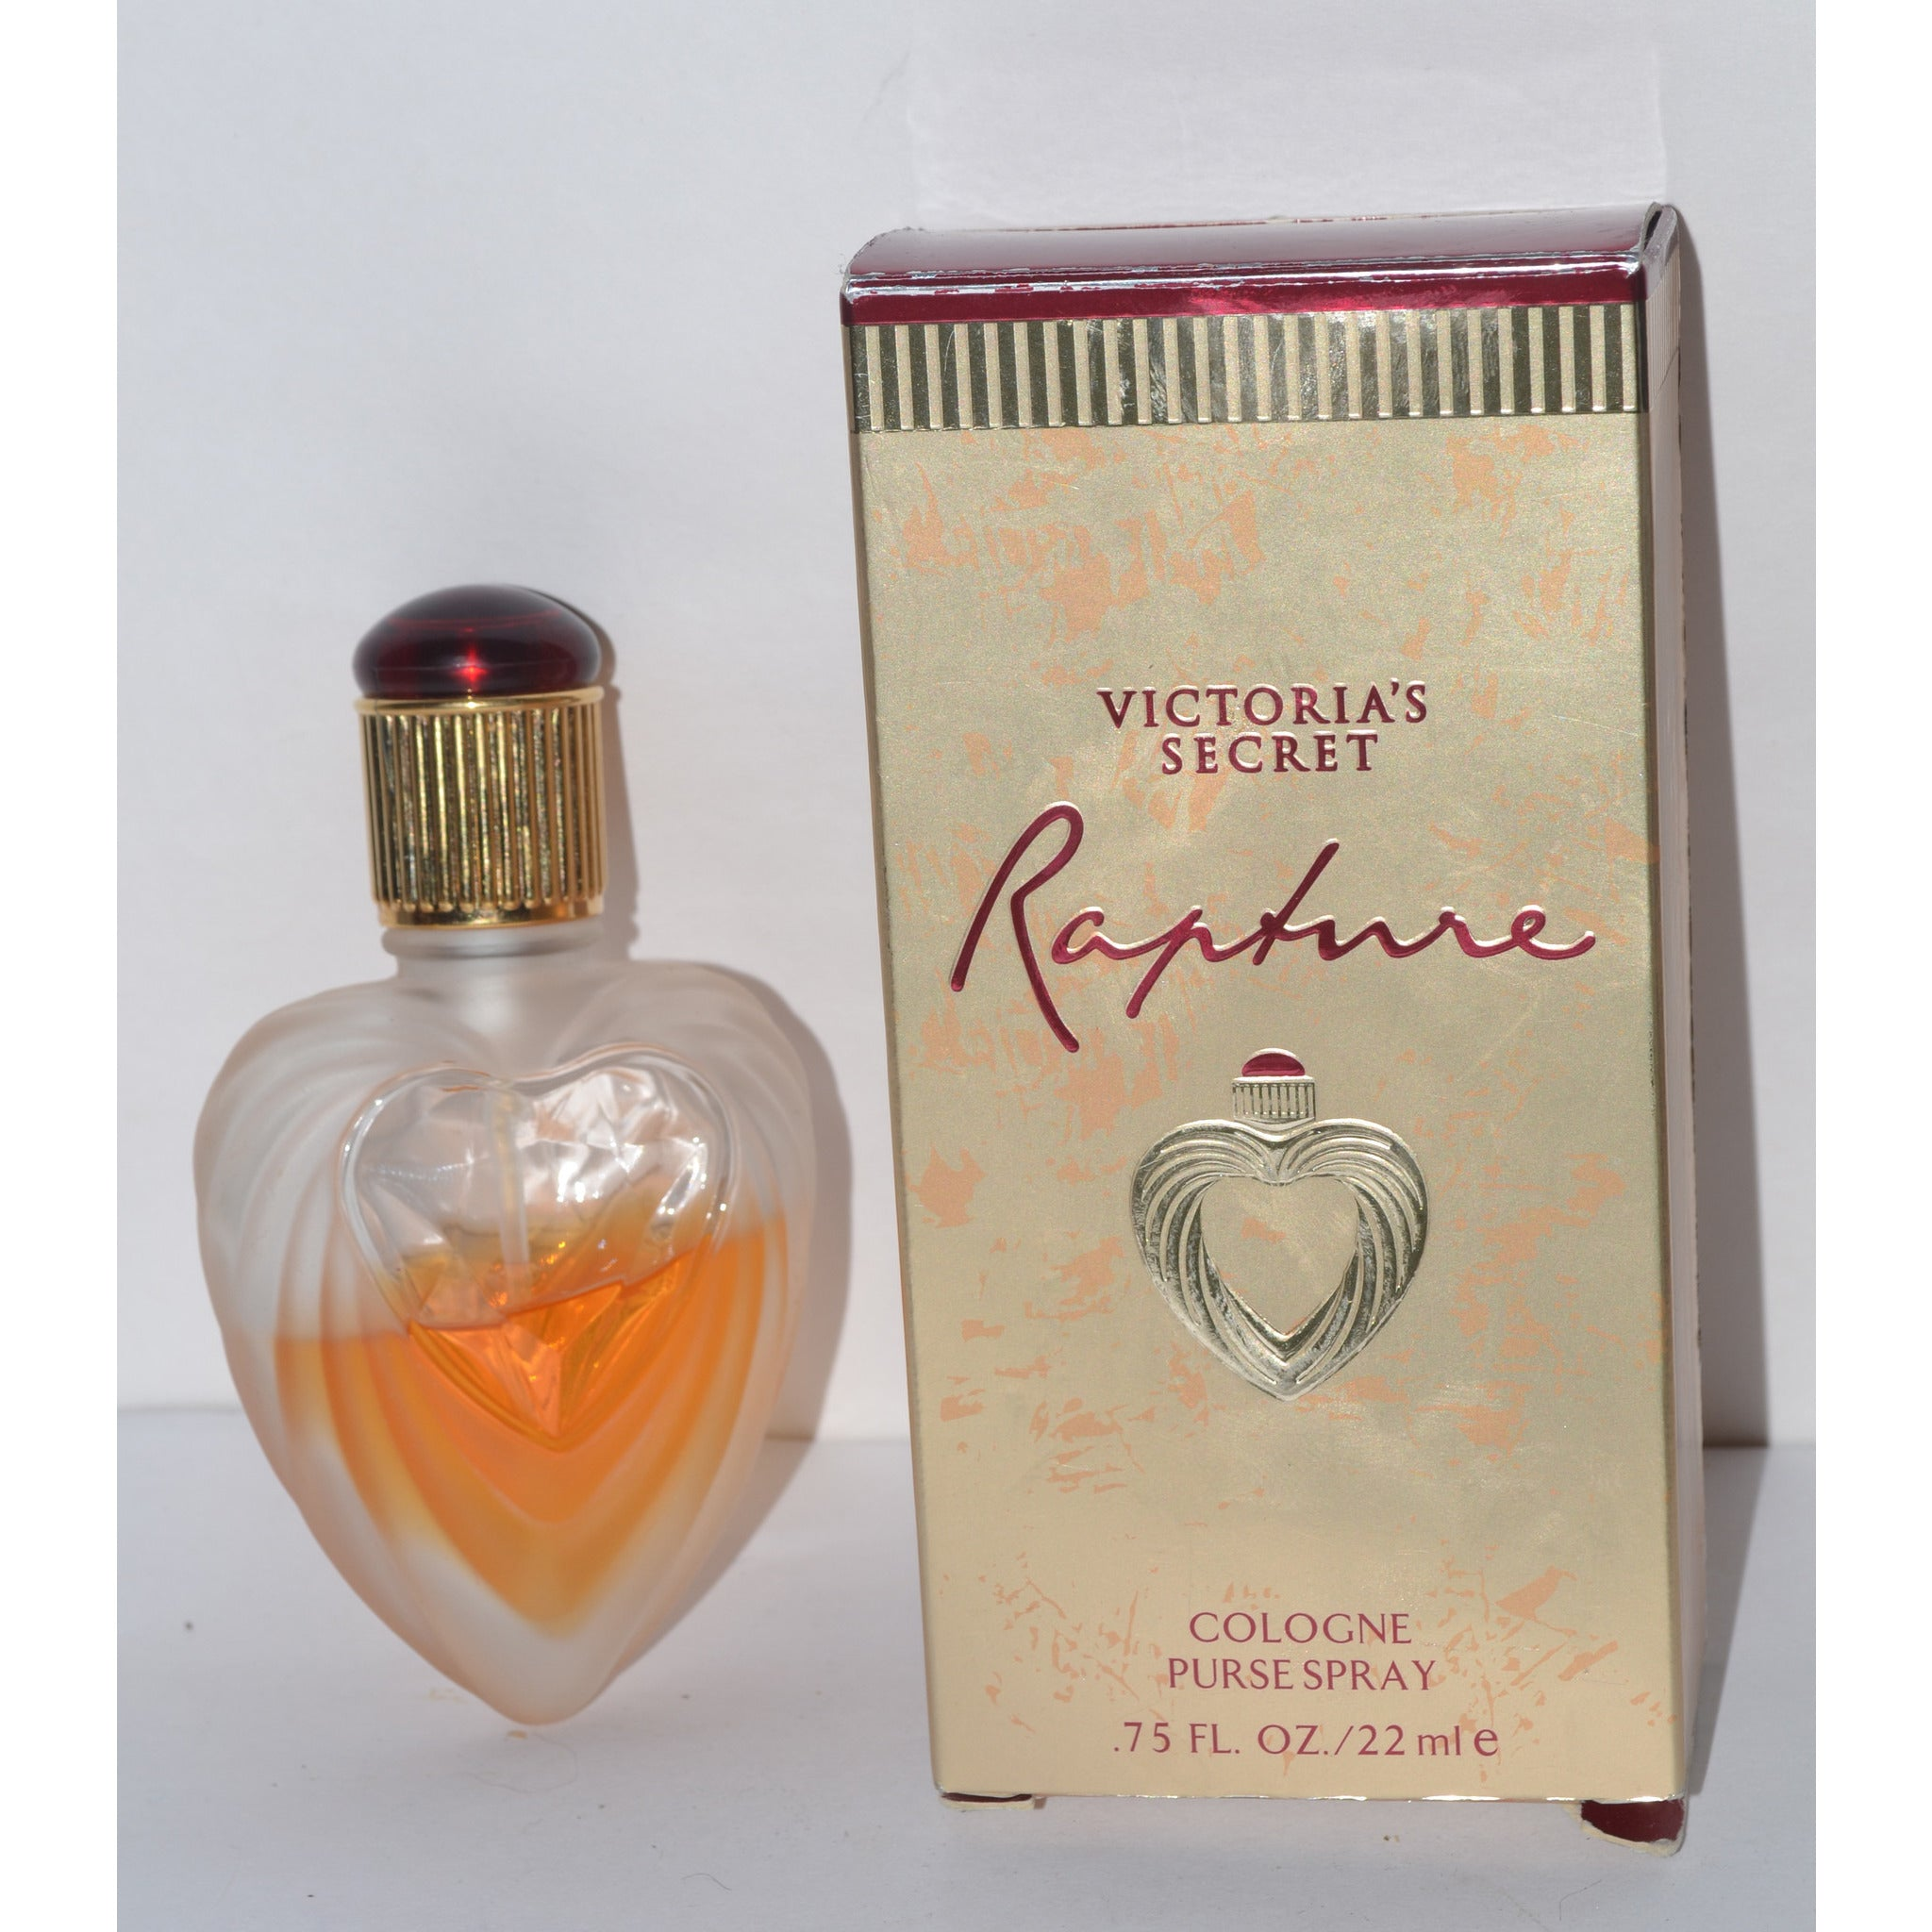 Discontinued Rapture Cologne By Victoria's Secret